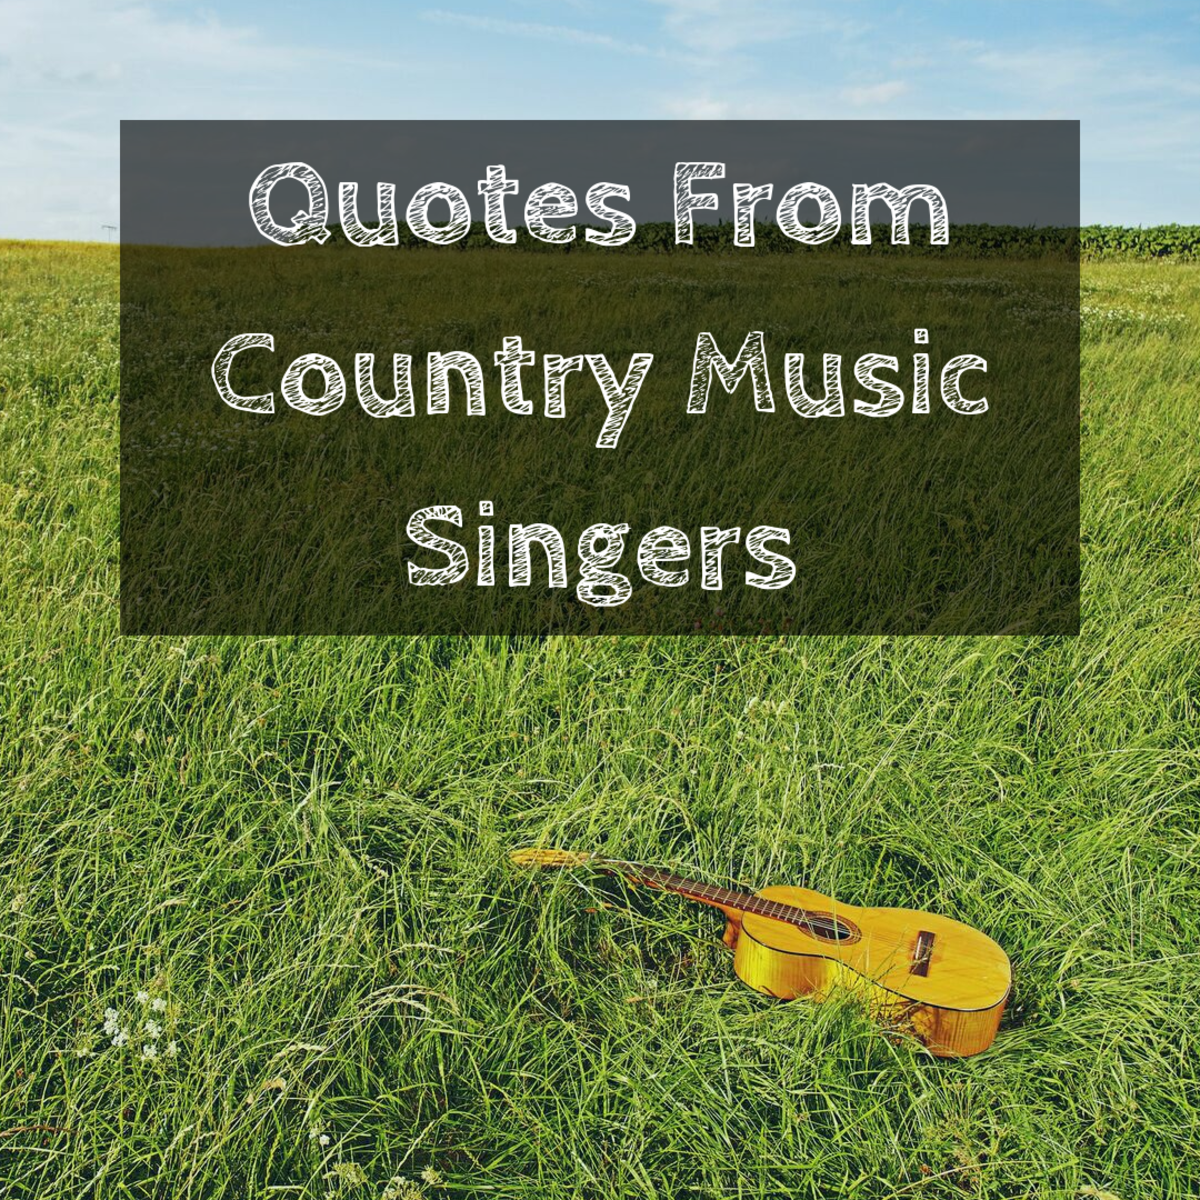 Enjoy some quotes about life from famous country music stars.